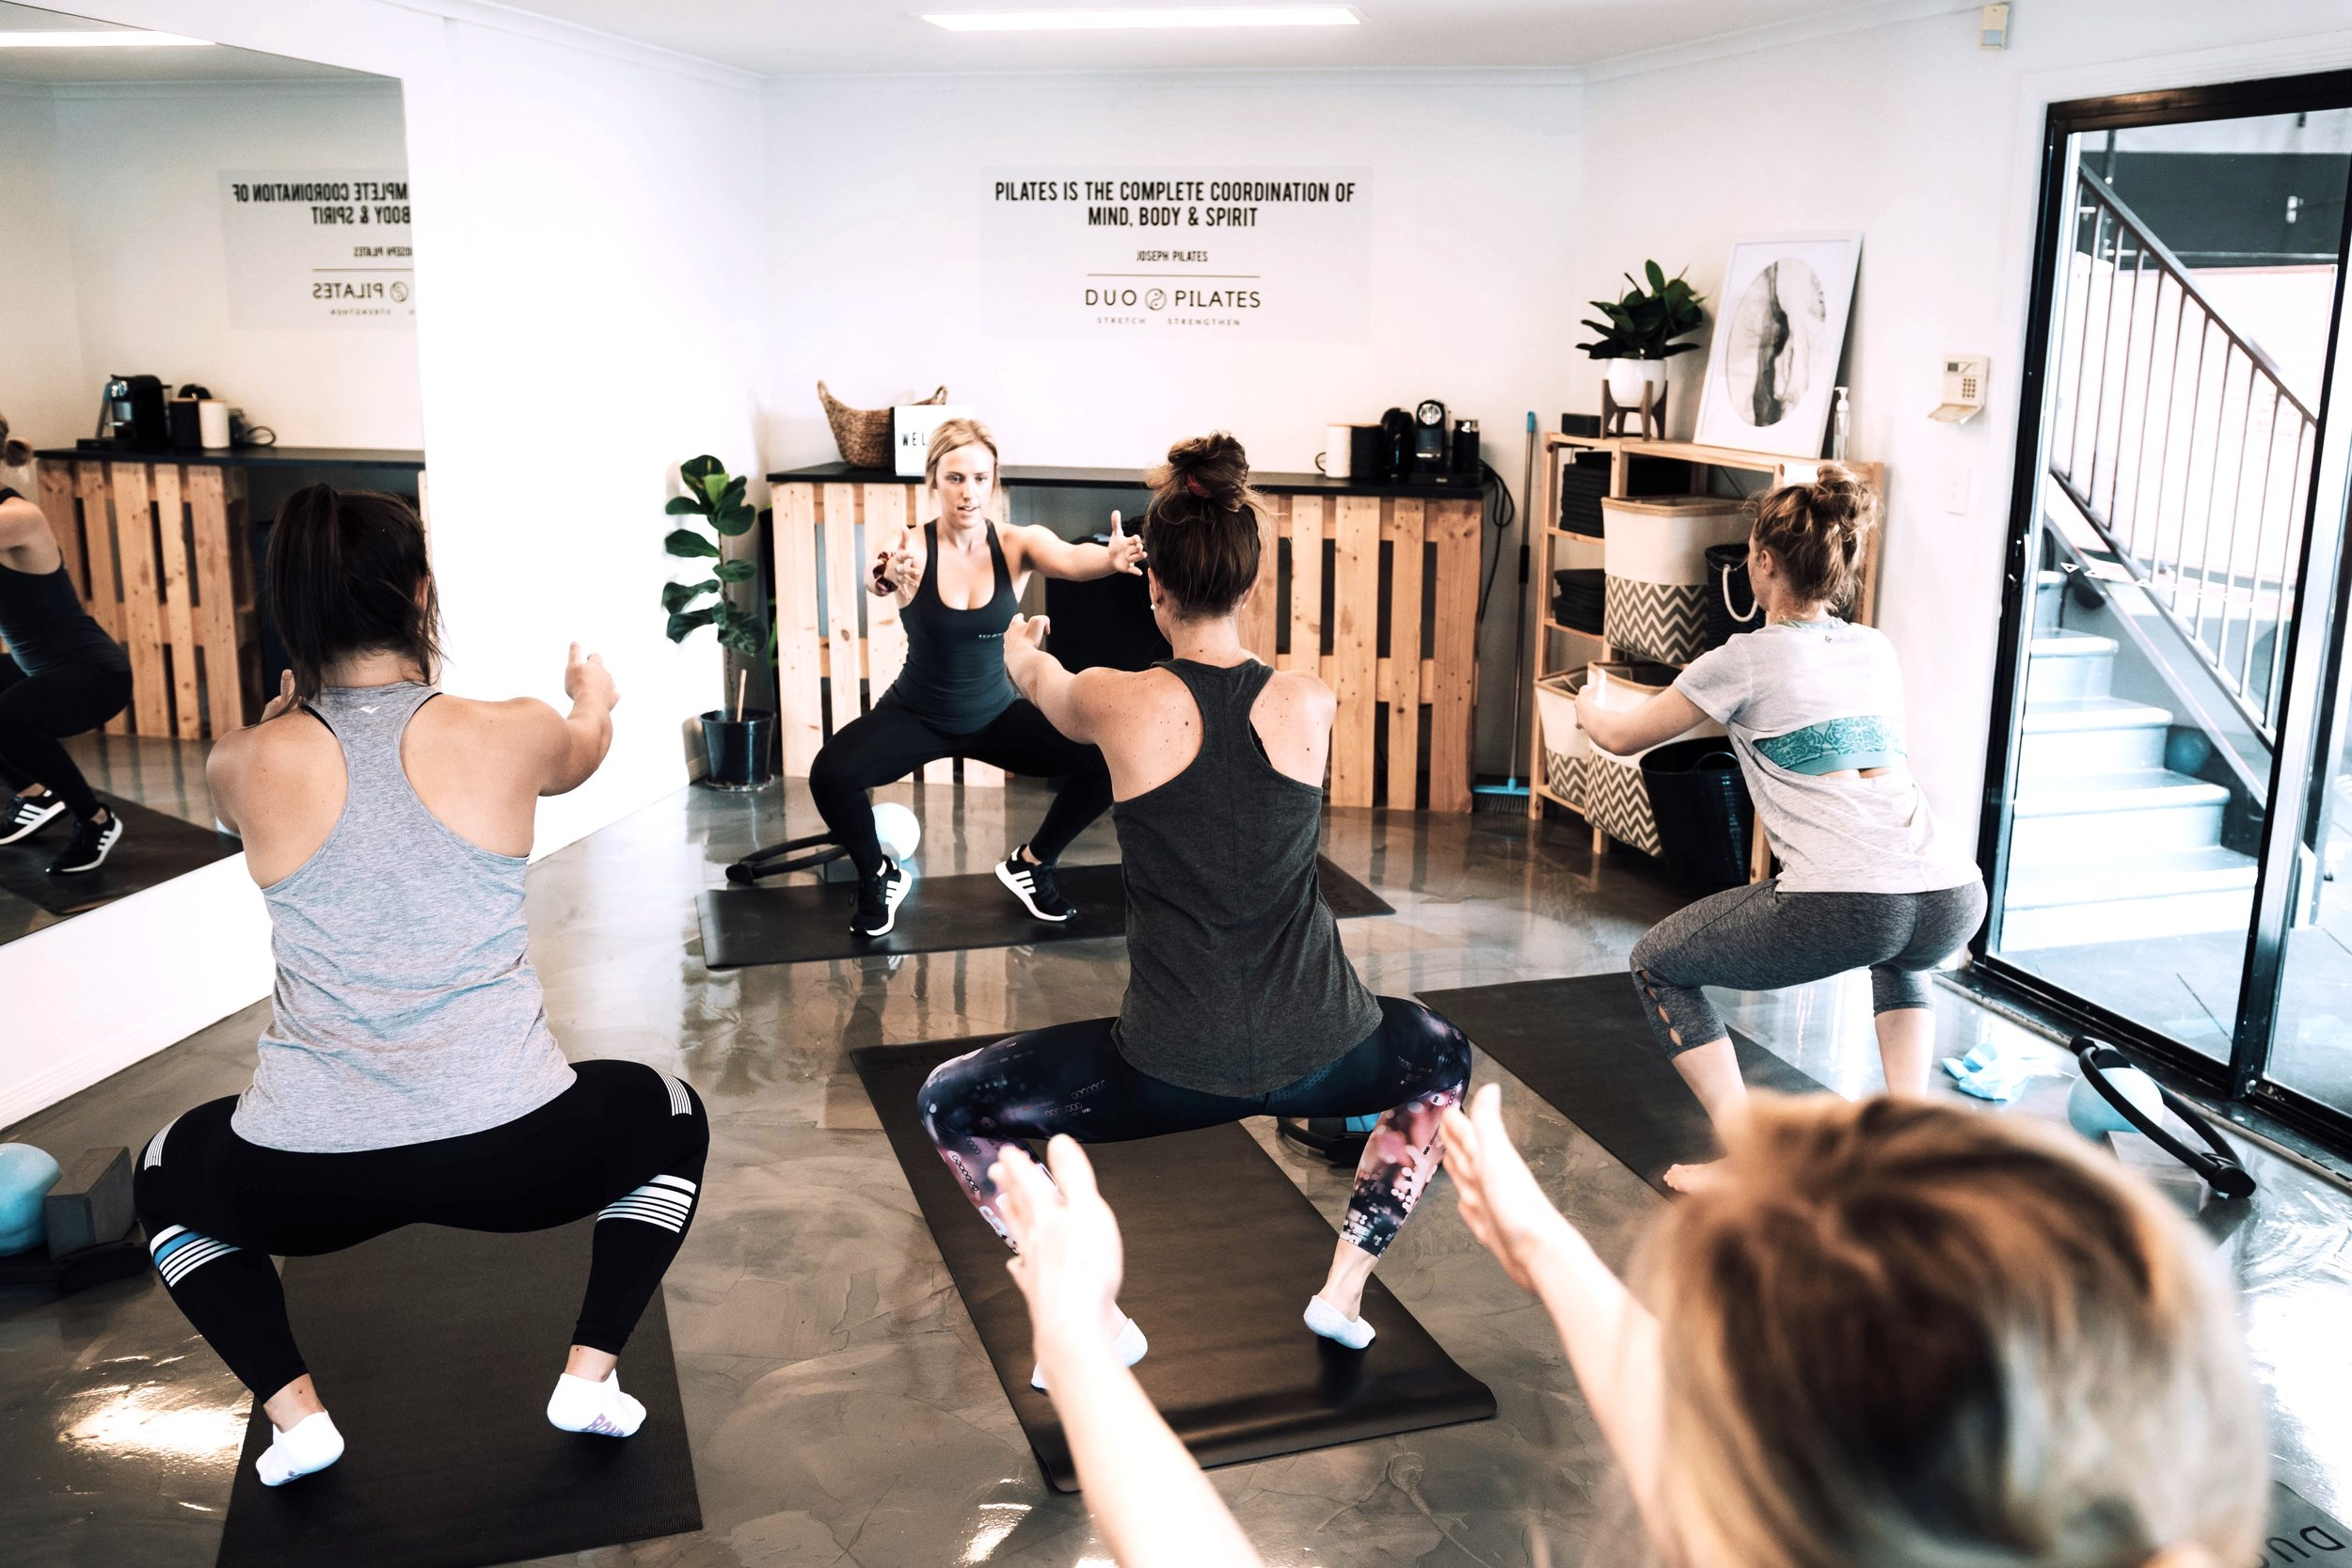 Camp Hill Pilates Studio